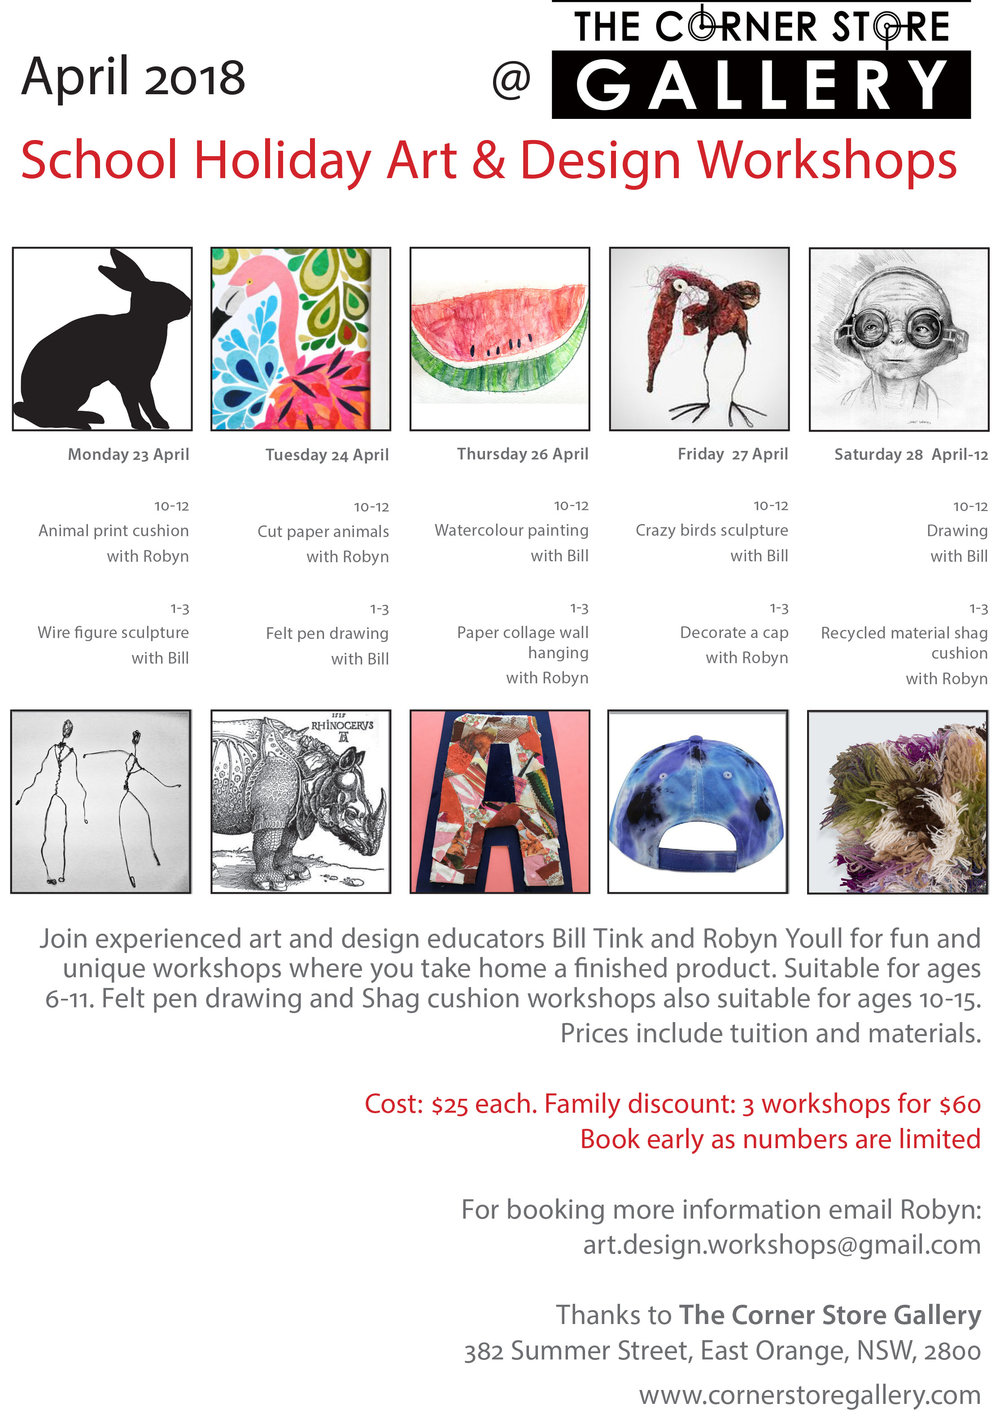 The Corner Store Gallery - School Holiday Workshops